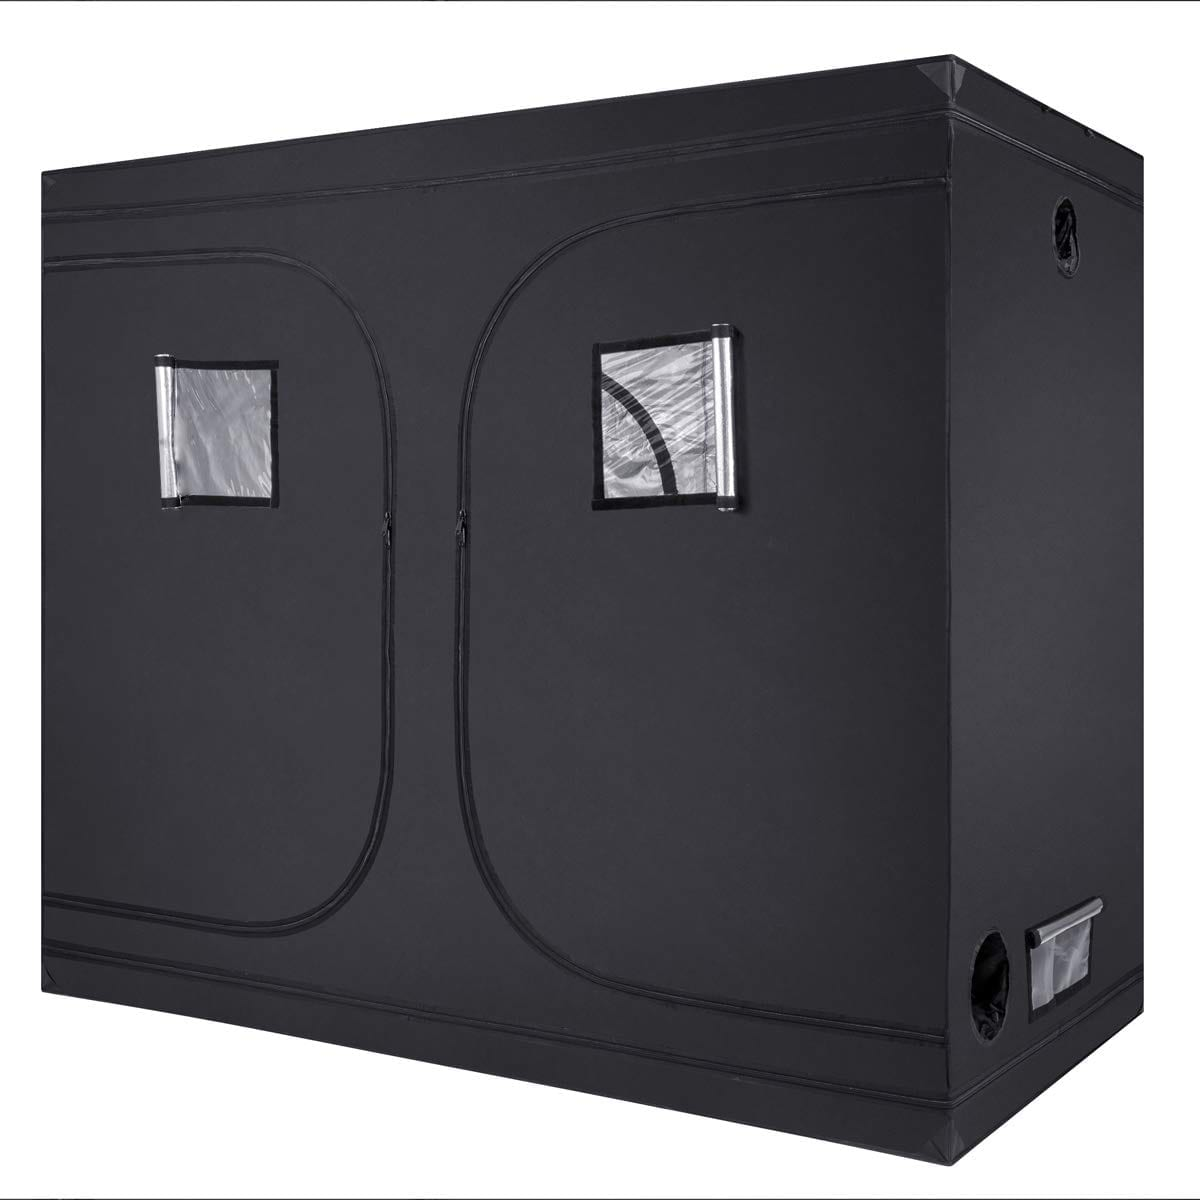 The Best 4x8 Grow Tent Reviews 2019